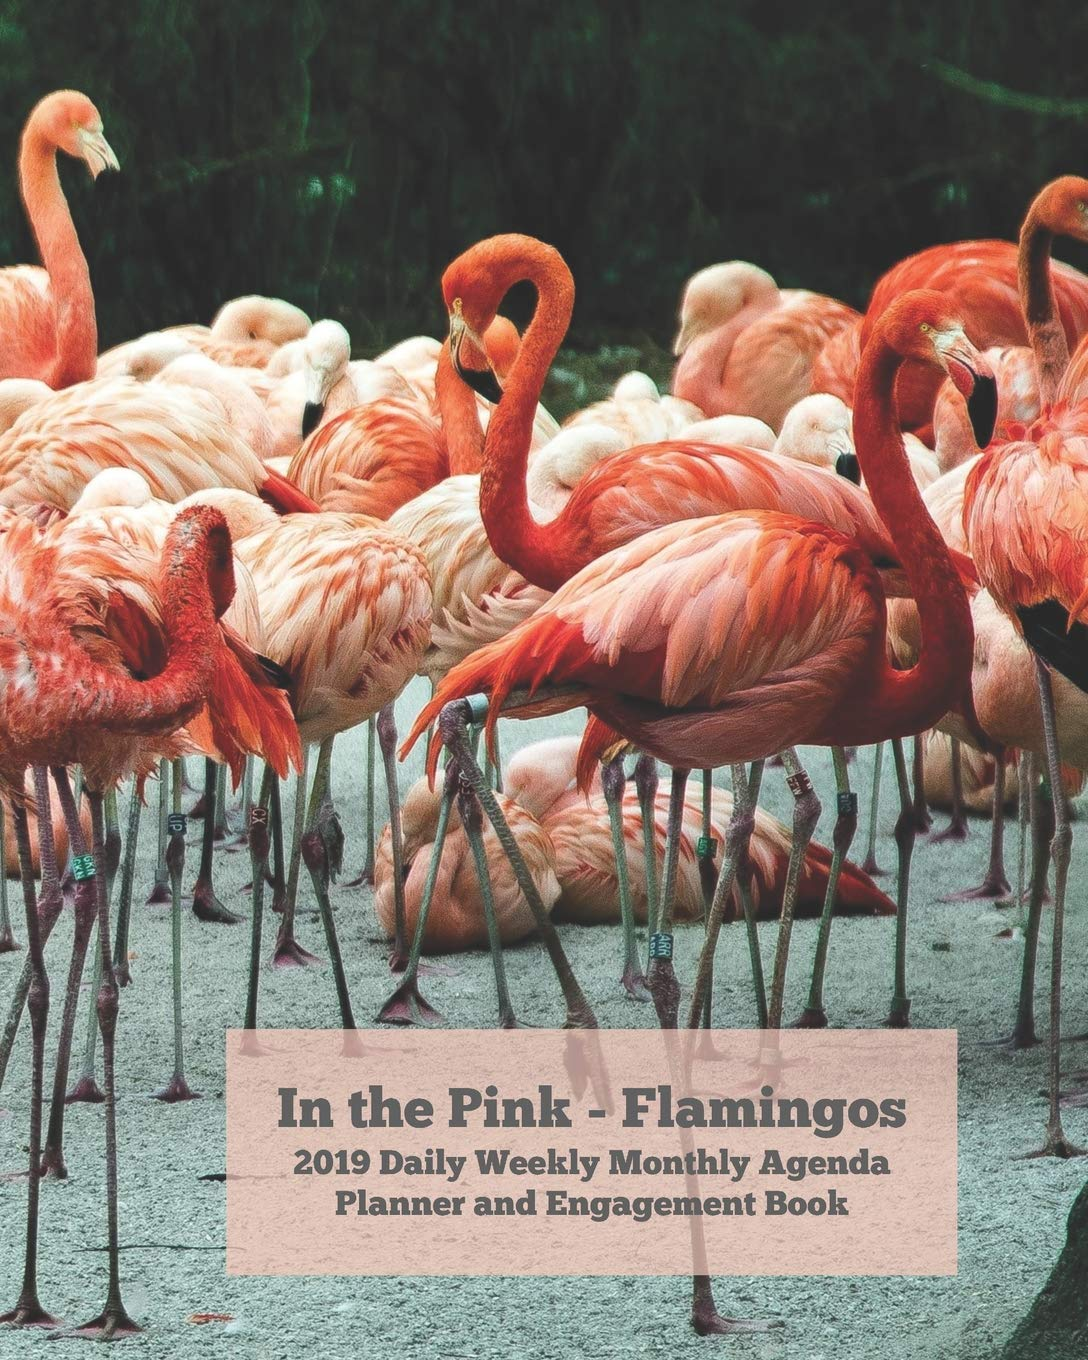 In the Pink - Flamingos 2019 Daily Weekly Monthly Agenda ...